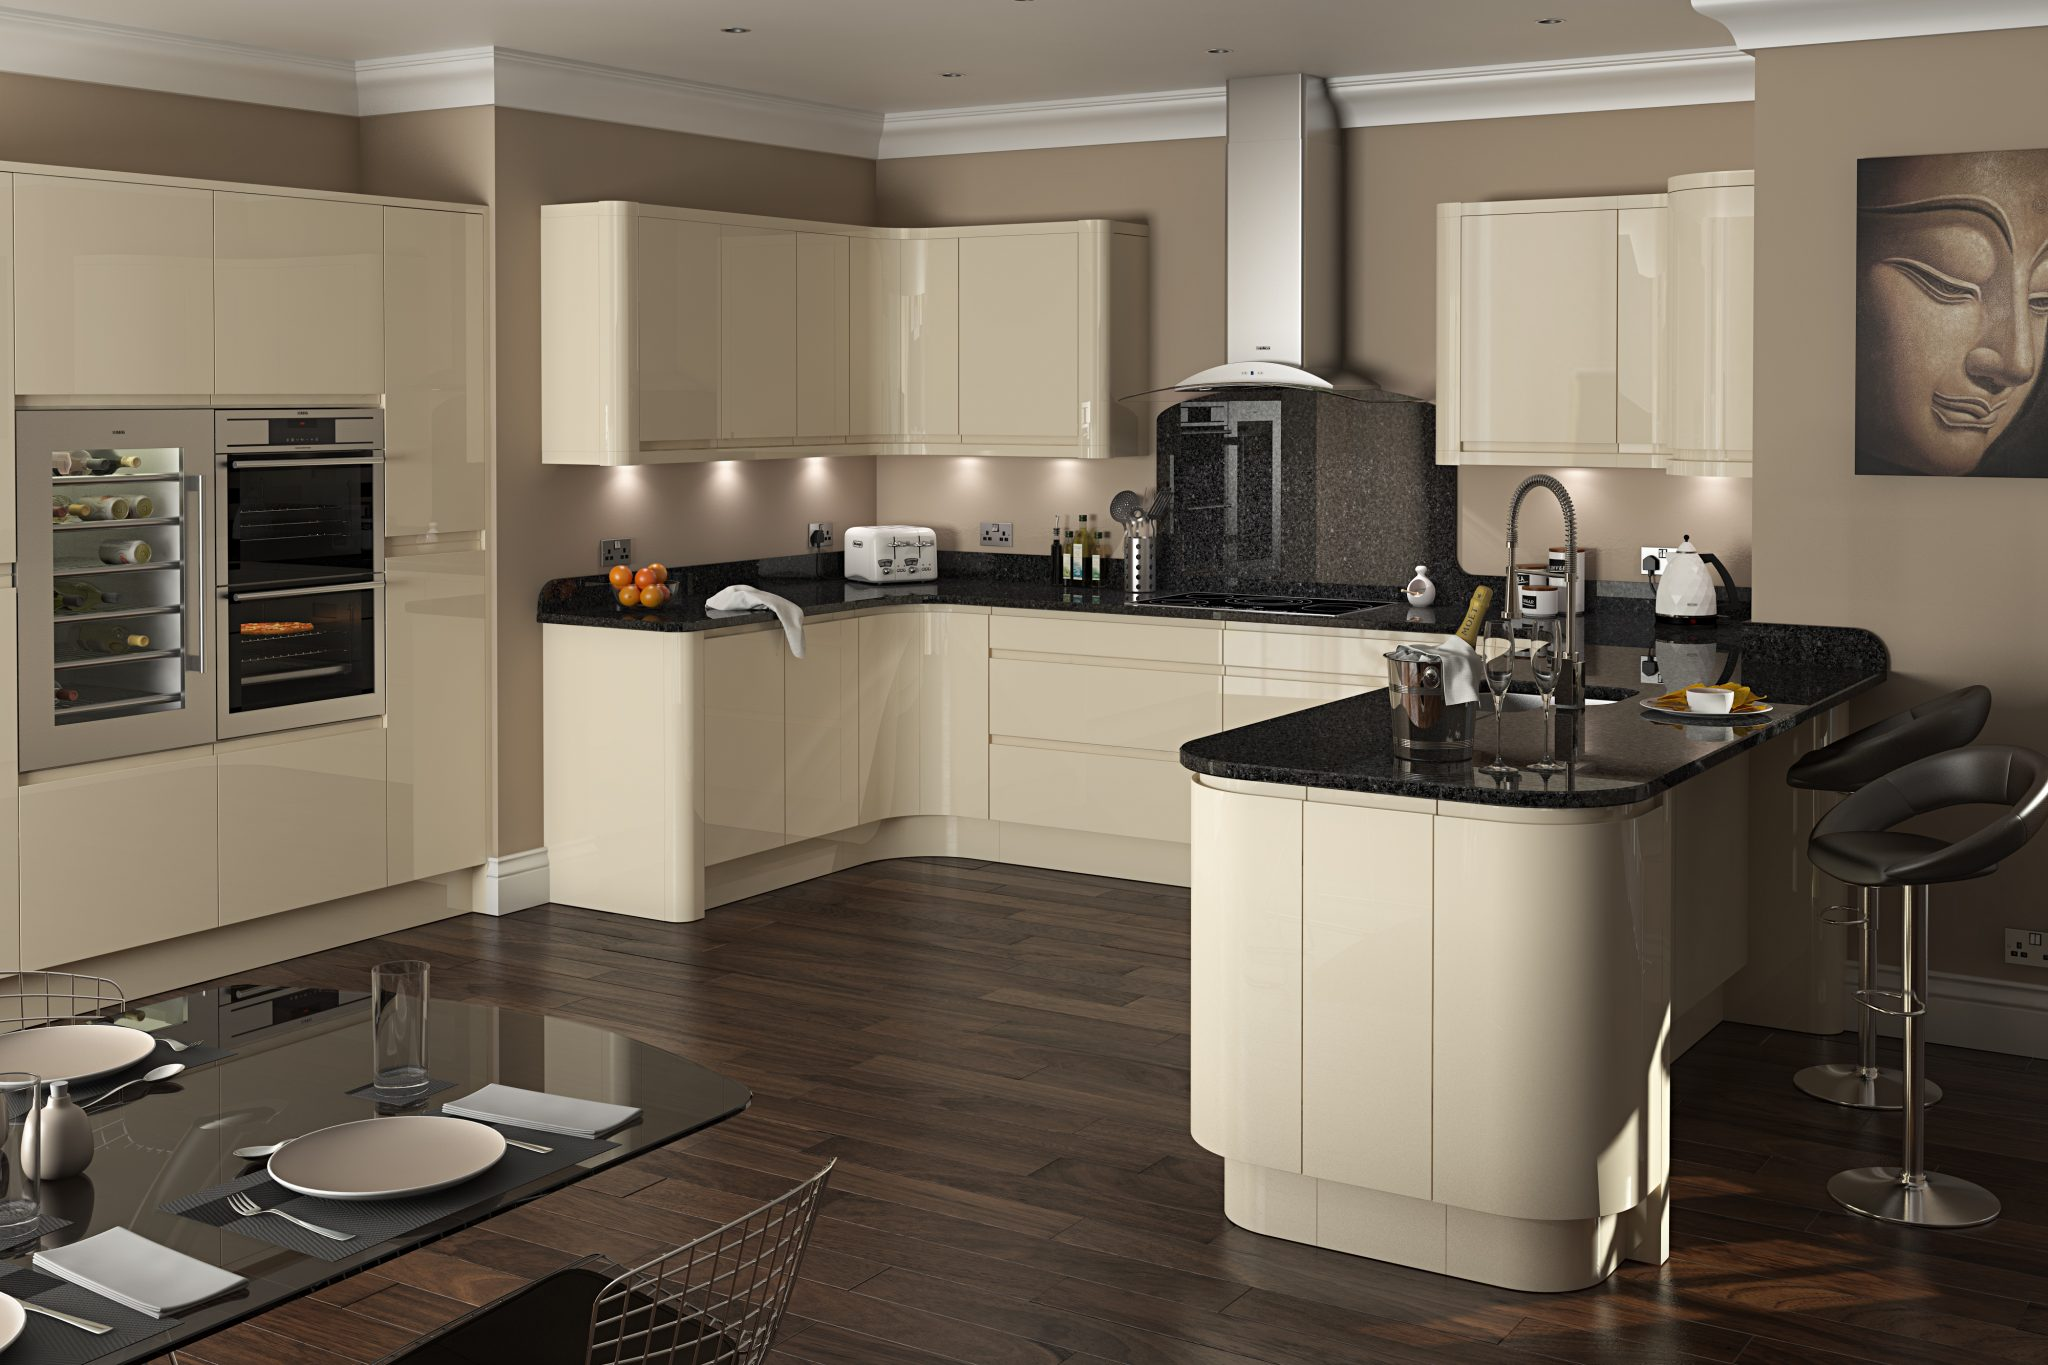 Kitchen design kitchens wirral bespoke luxury designs for Kitchen ideaa